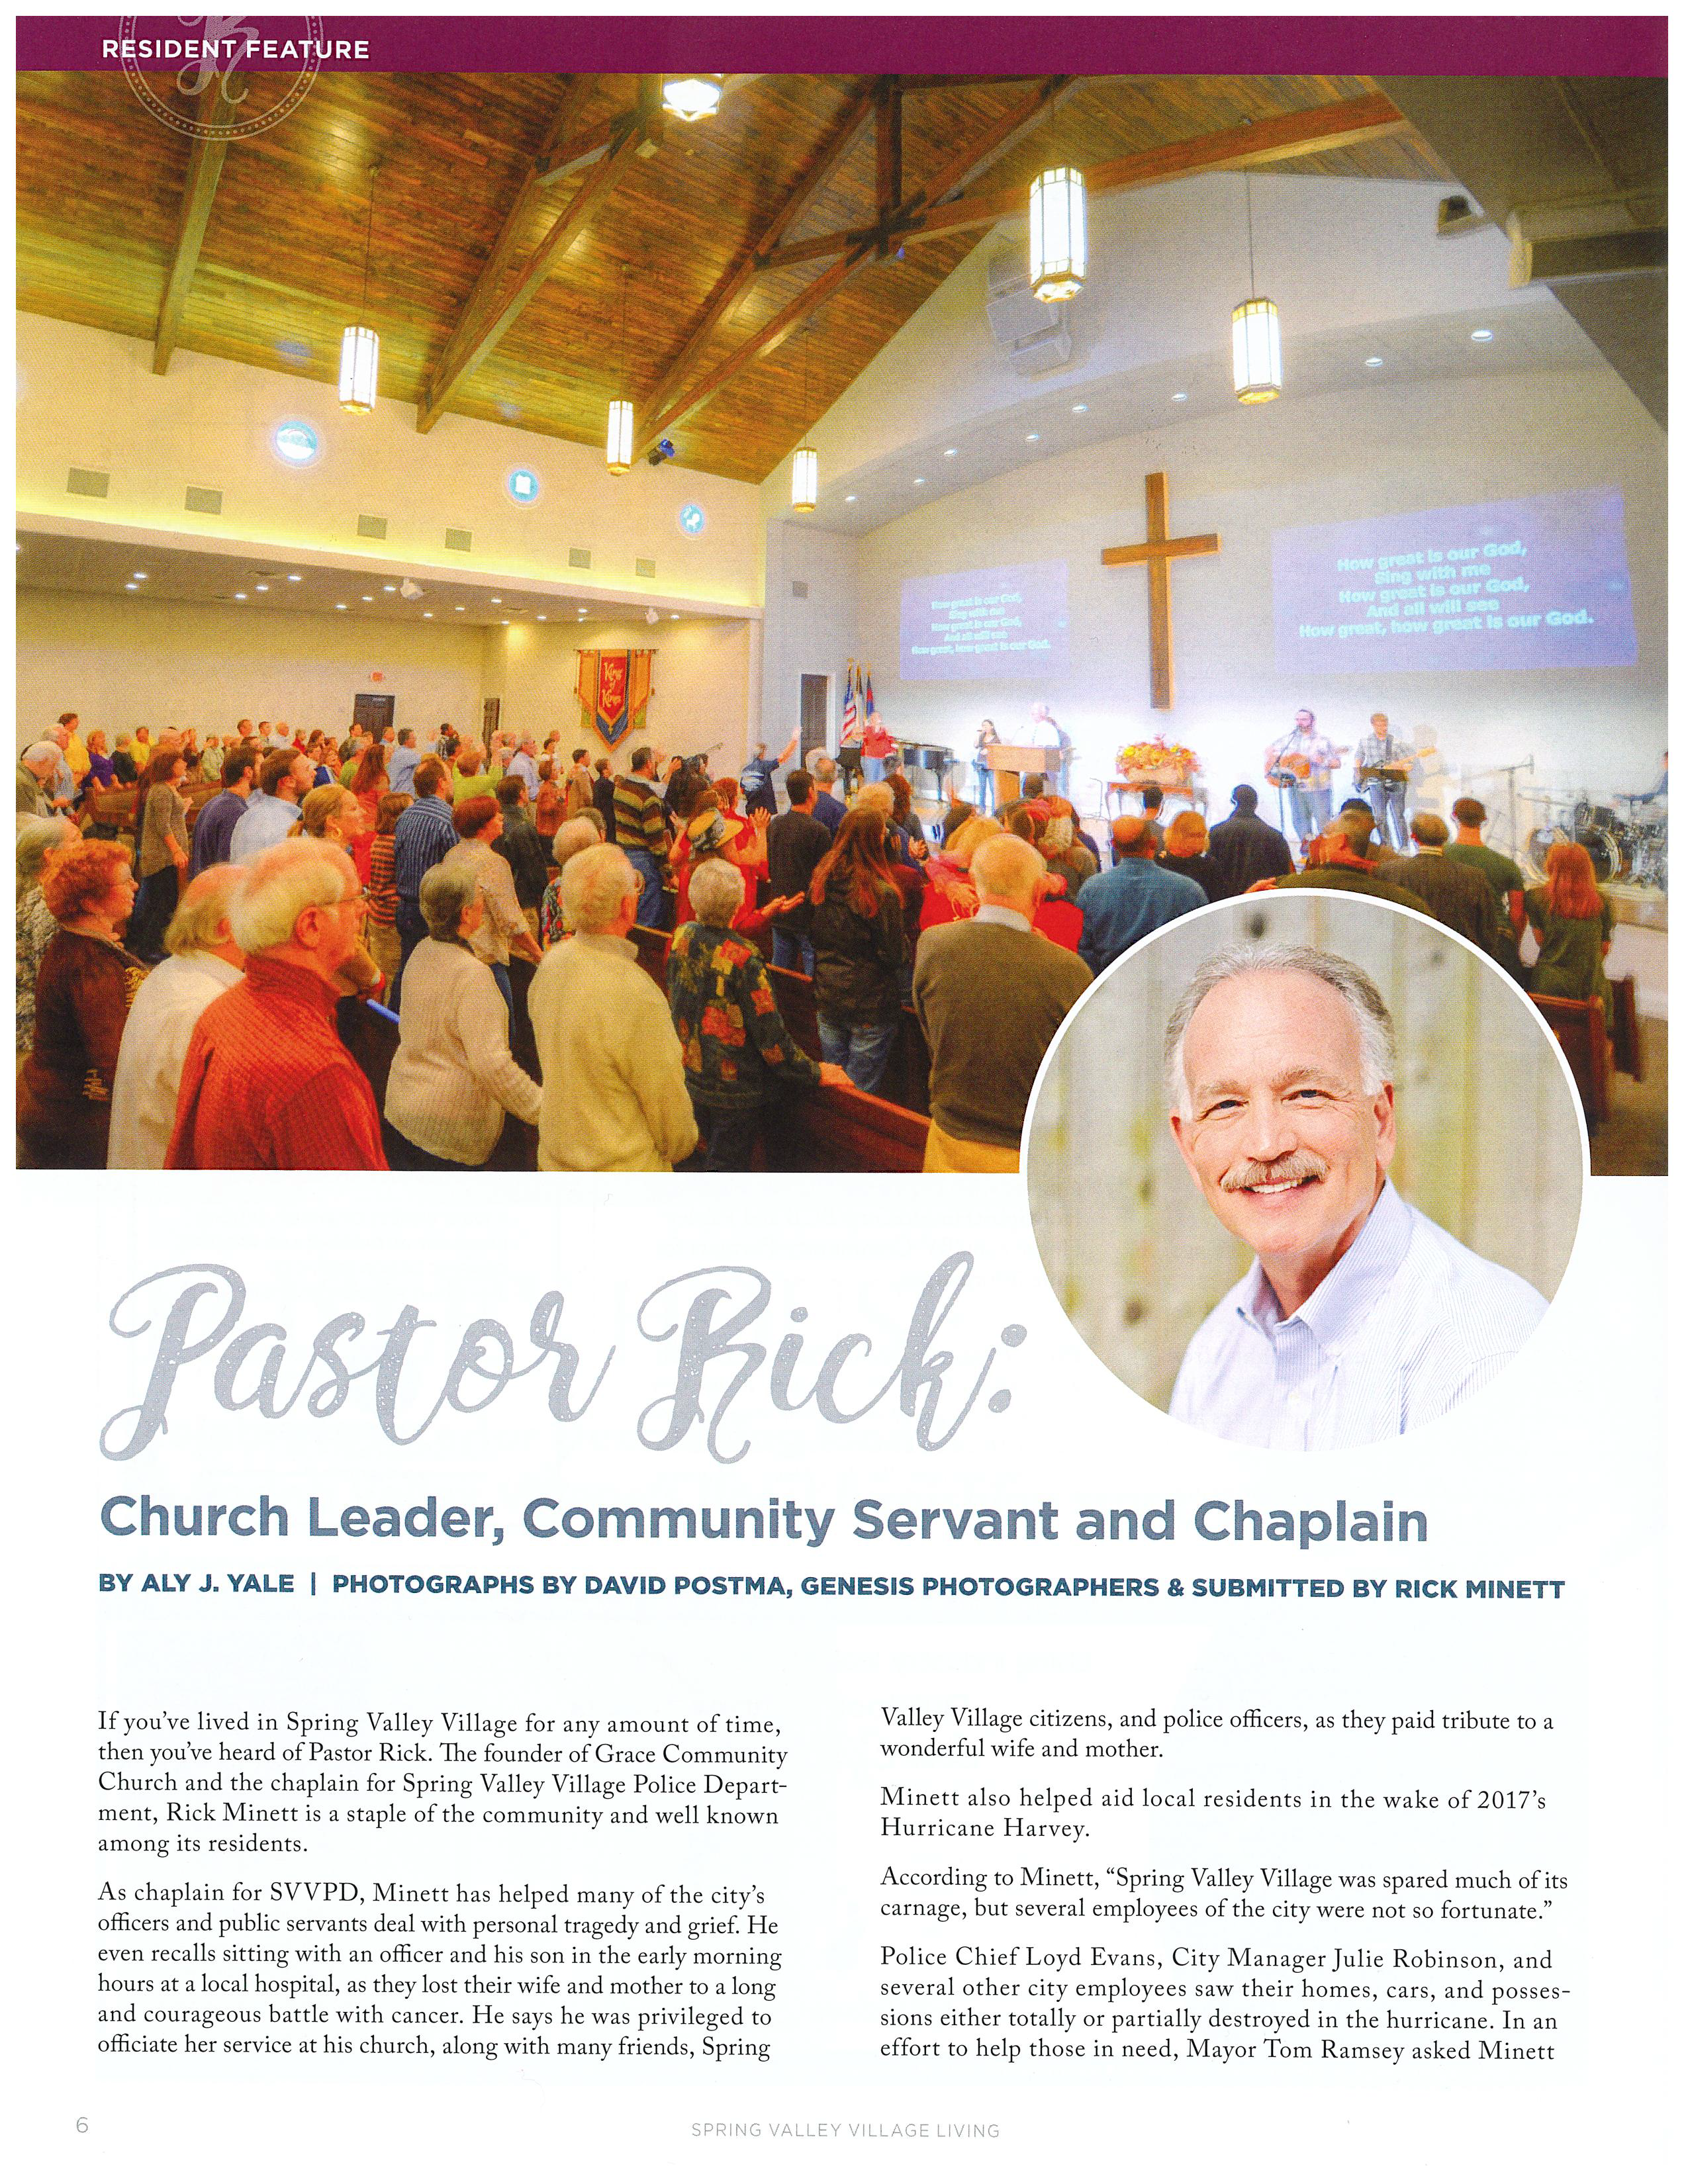 Spring Valley Village Magazine - Pastor Rick article ONLY-2.png